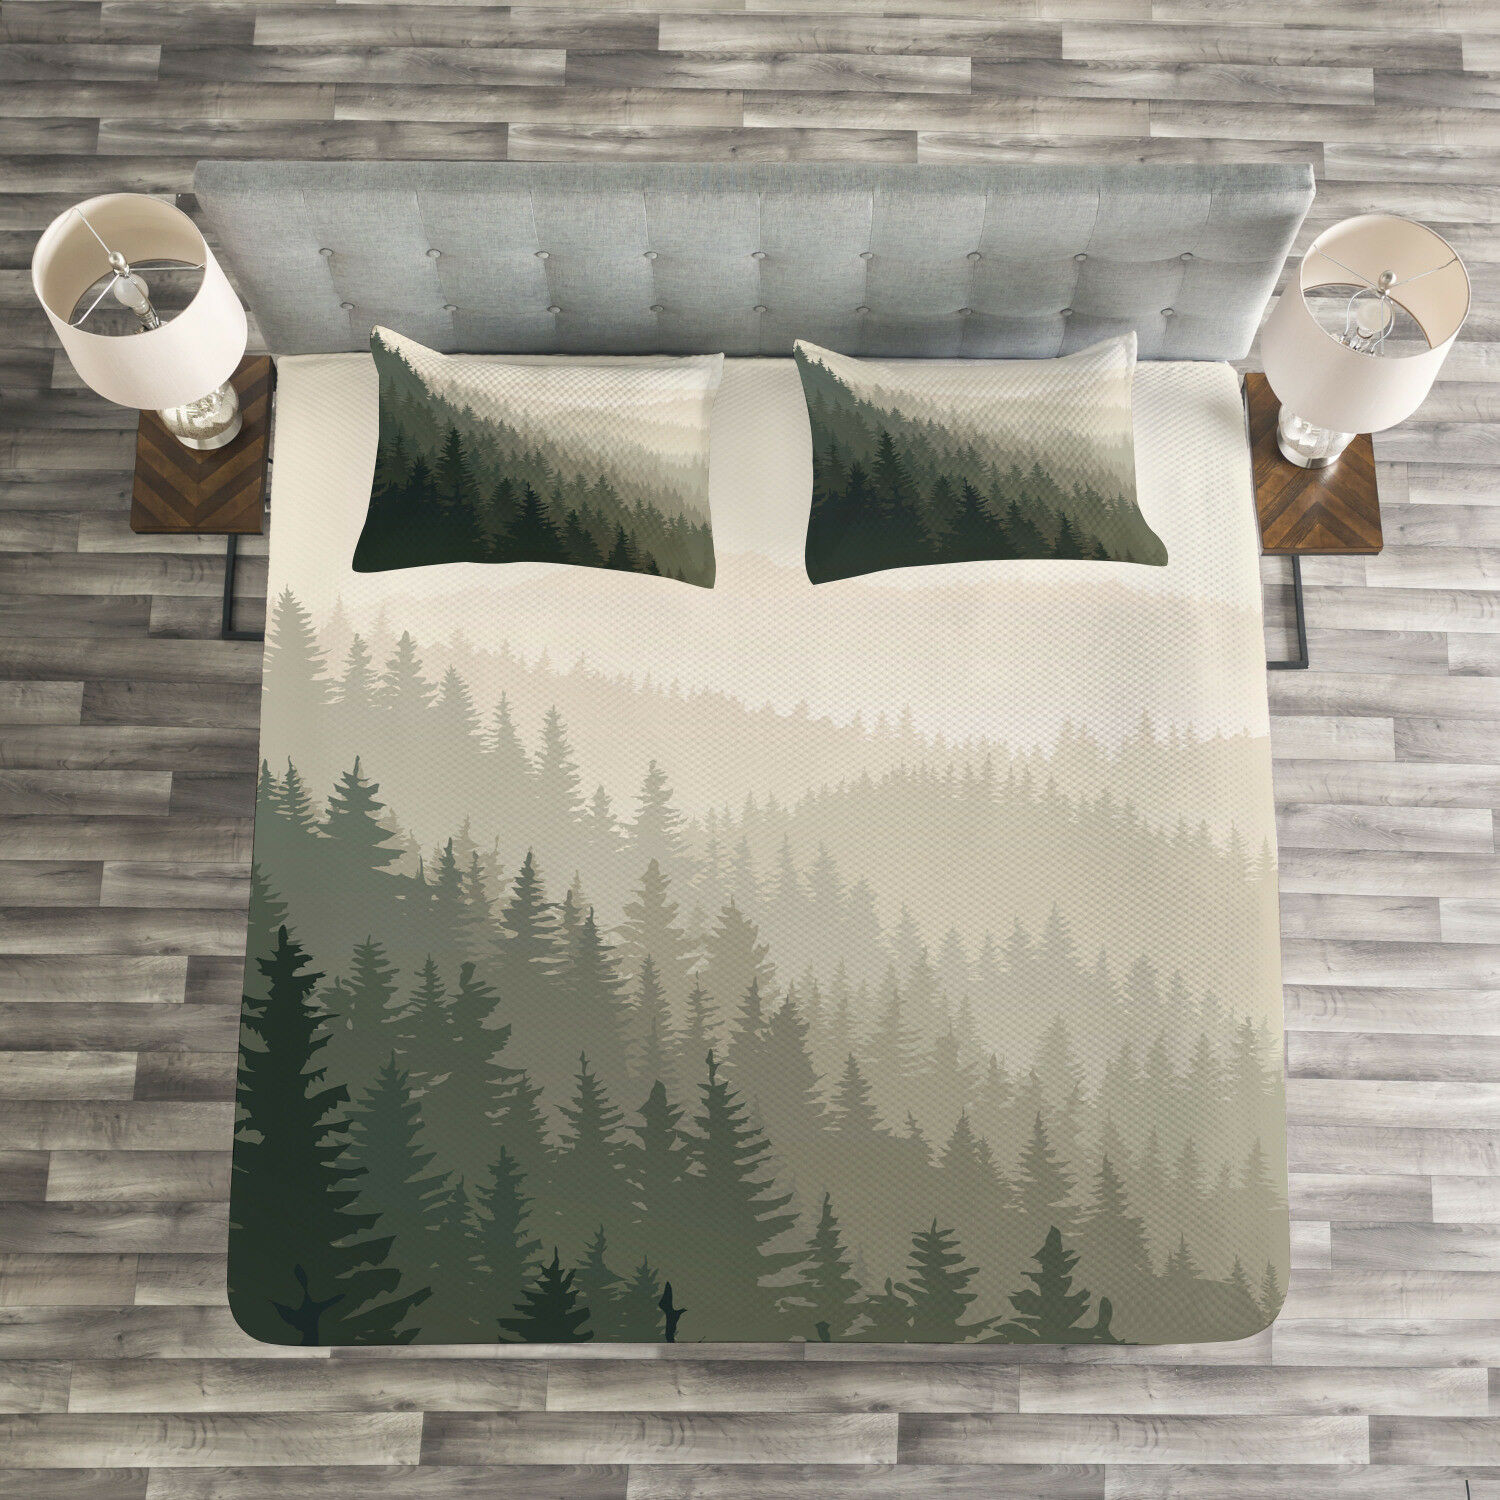 Forest Quilted Bedspread & Pillow Shams Set, Scandinavian Nature Print